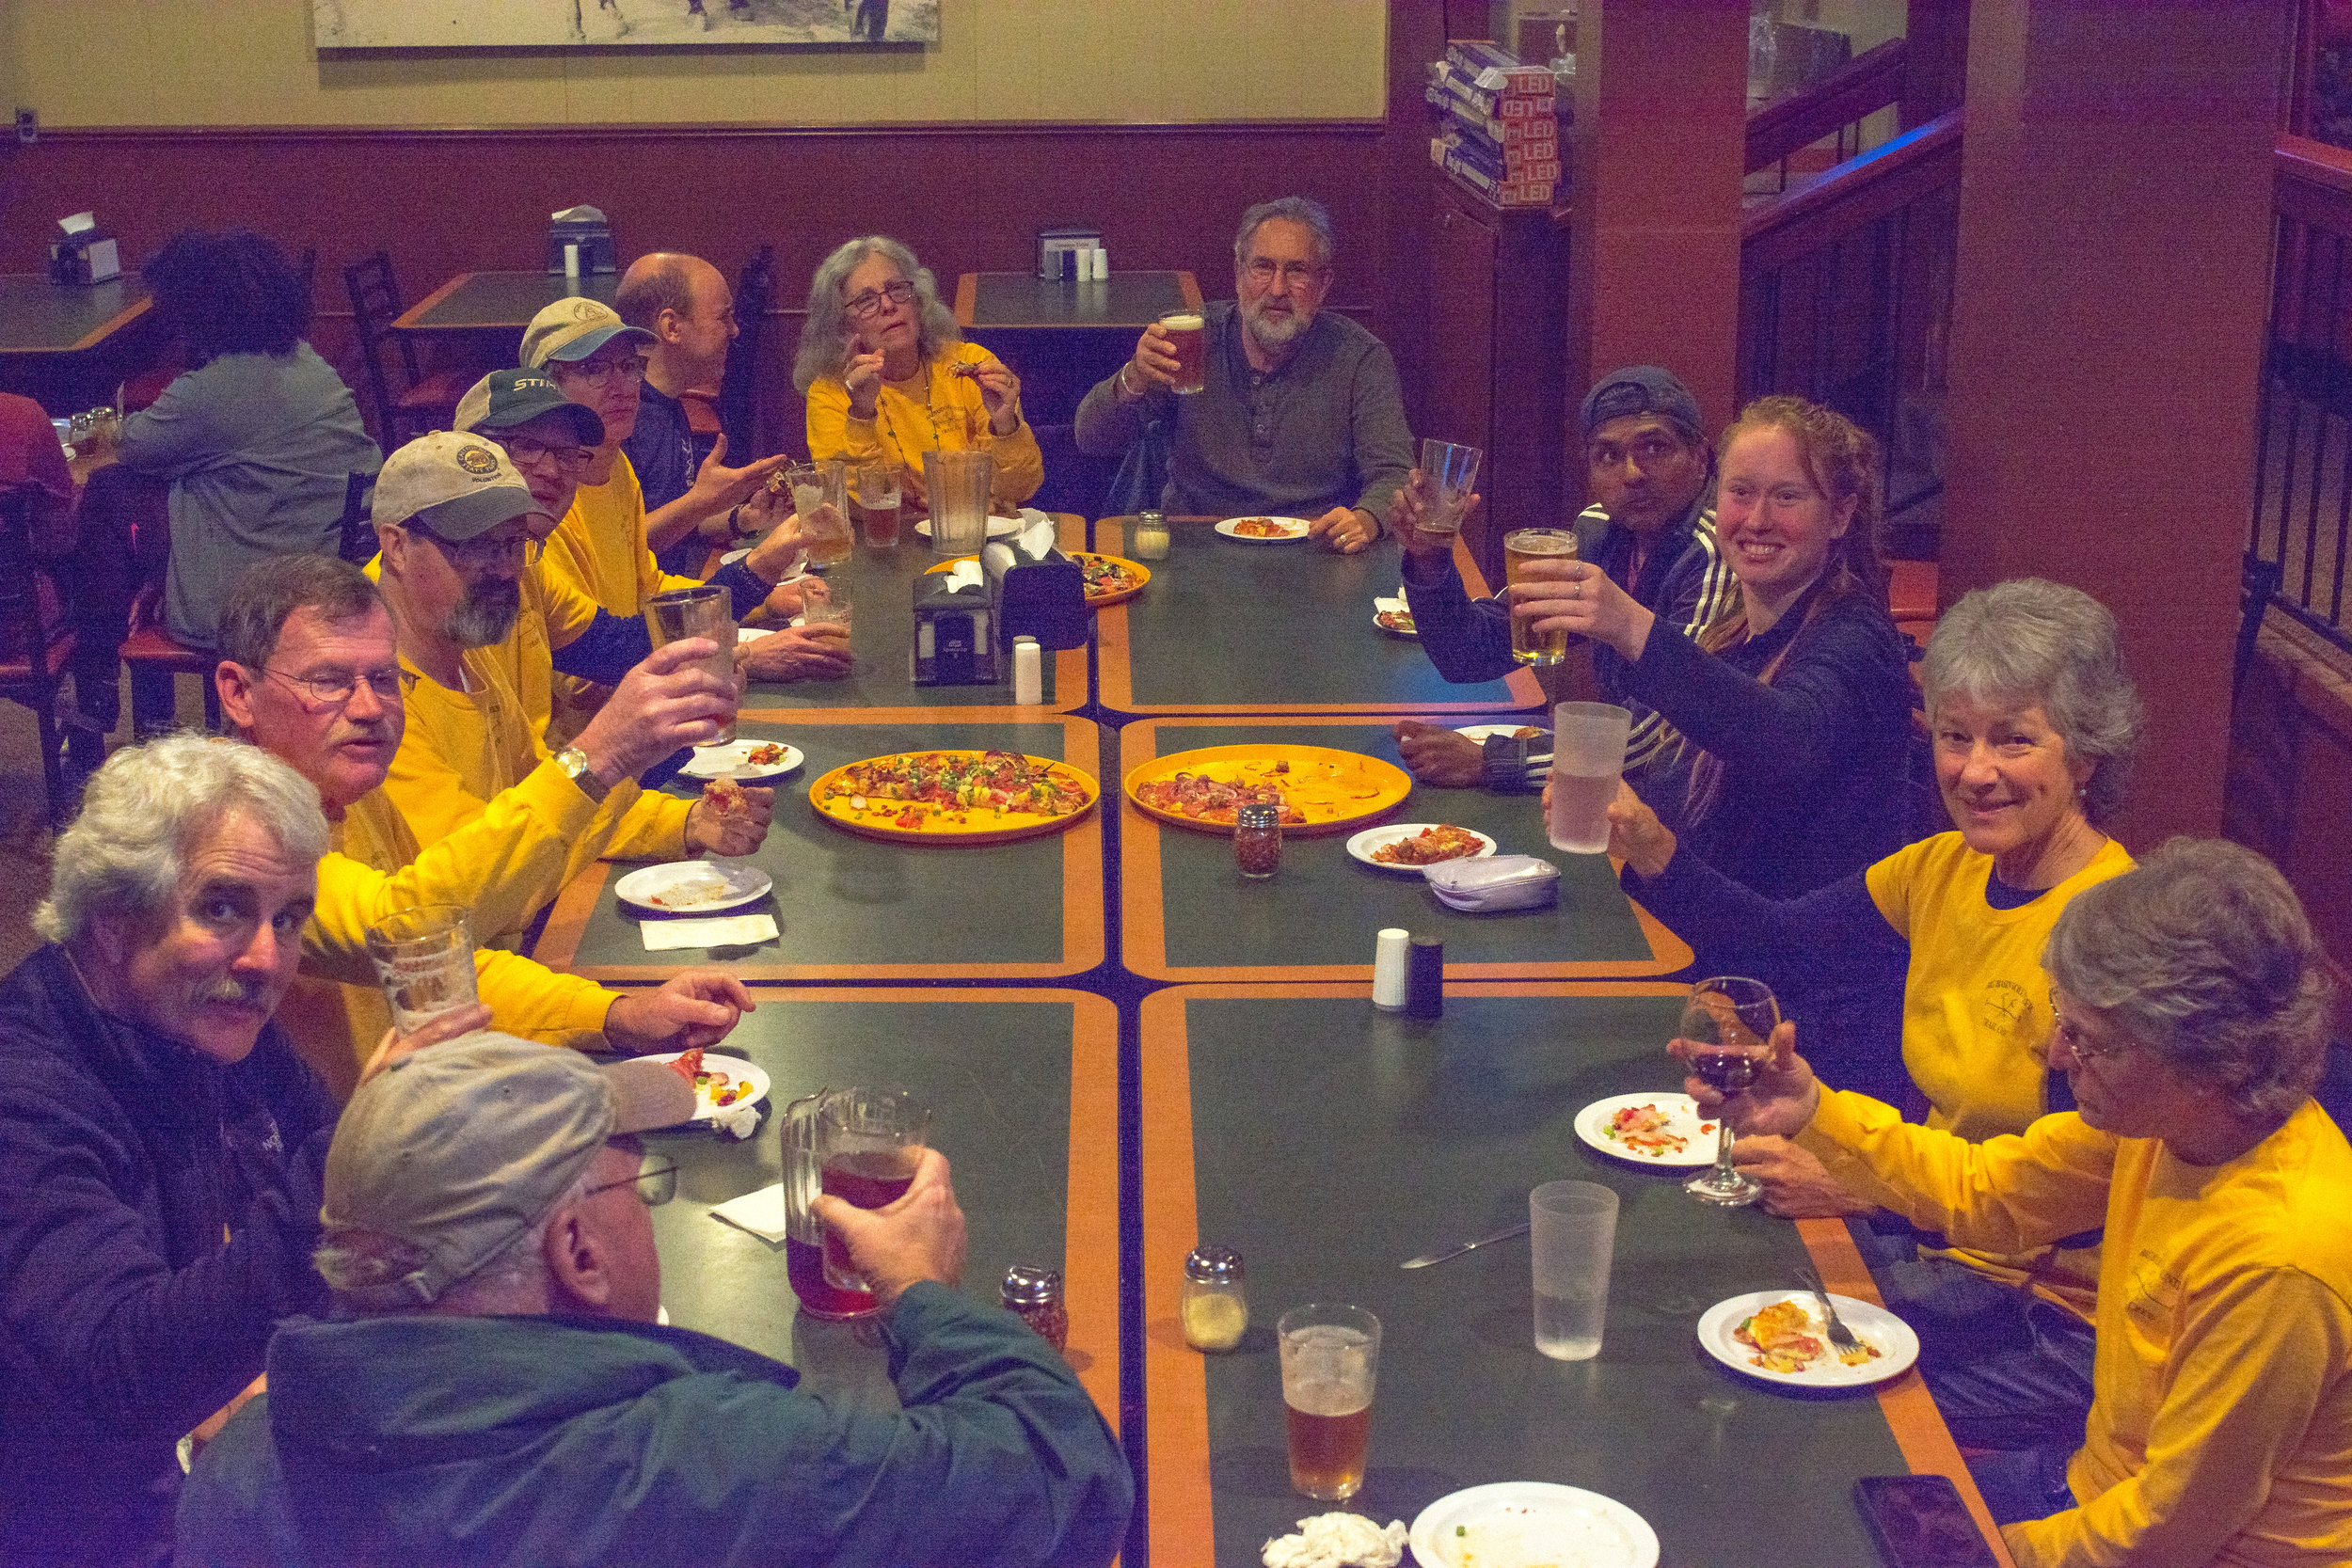 Cheers to the close of BBVTC 49th year working on the Big Basin SP trails